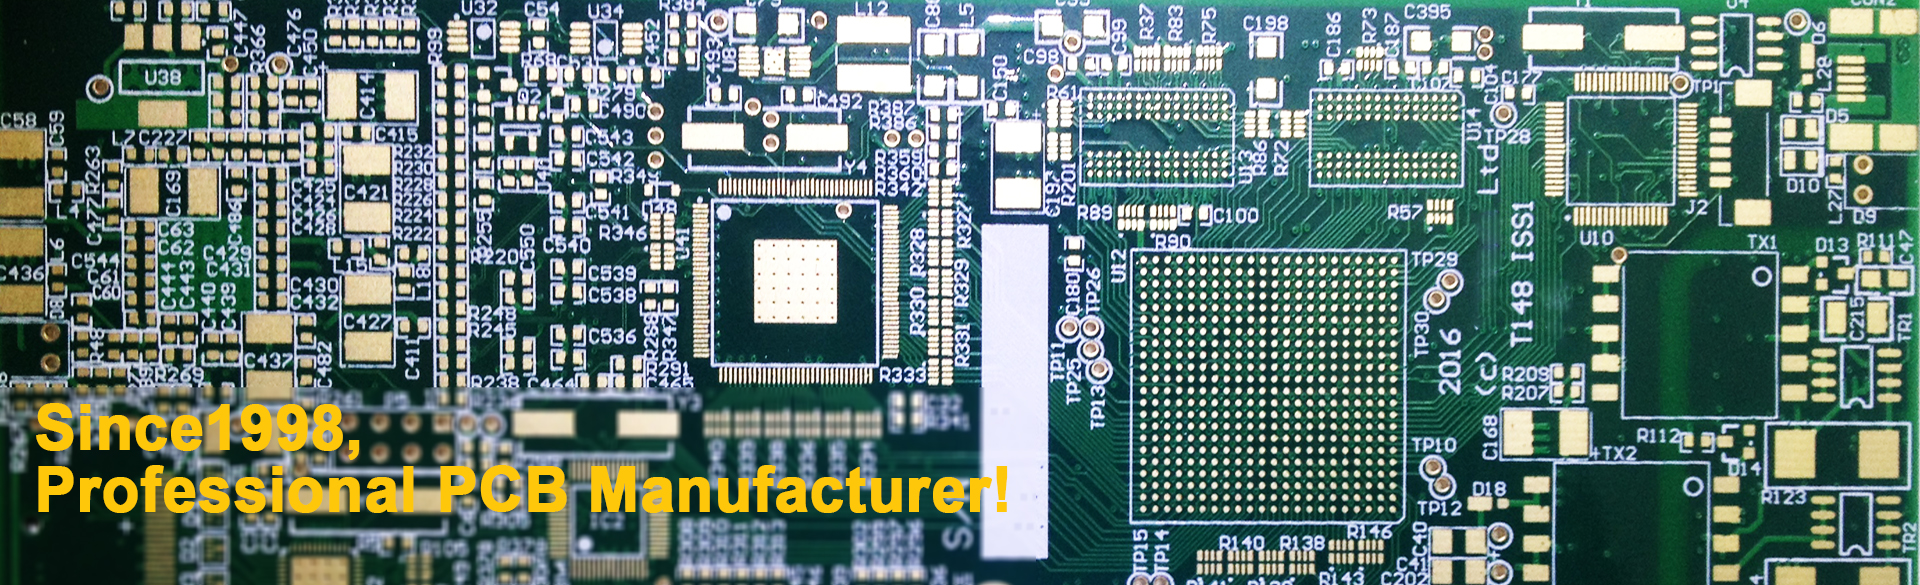 electronic pcb ,assembly pcb,pcb board assembly